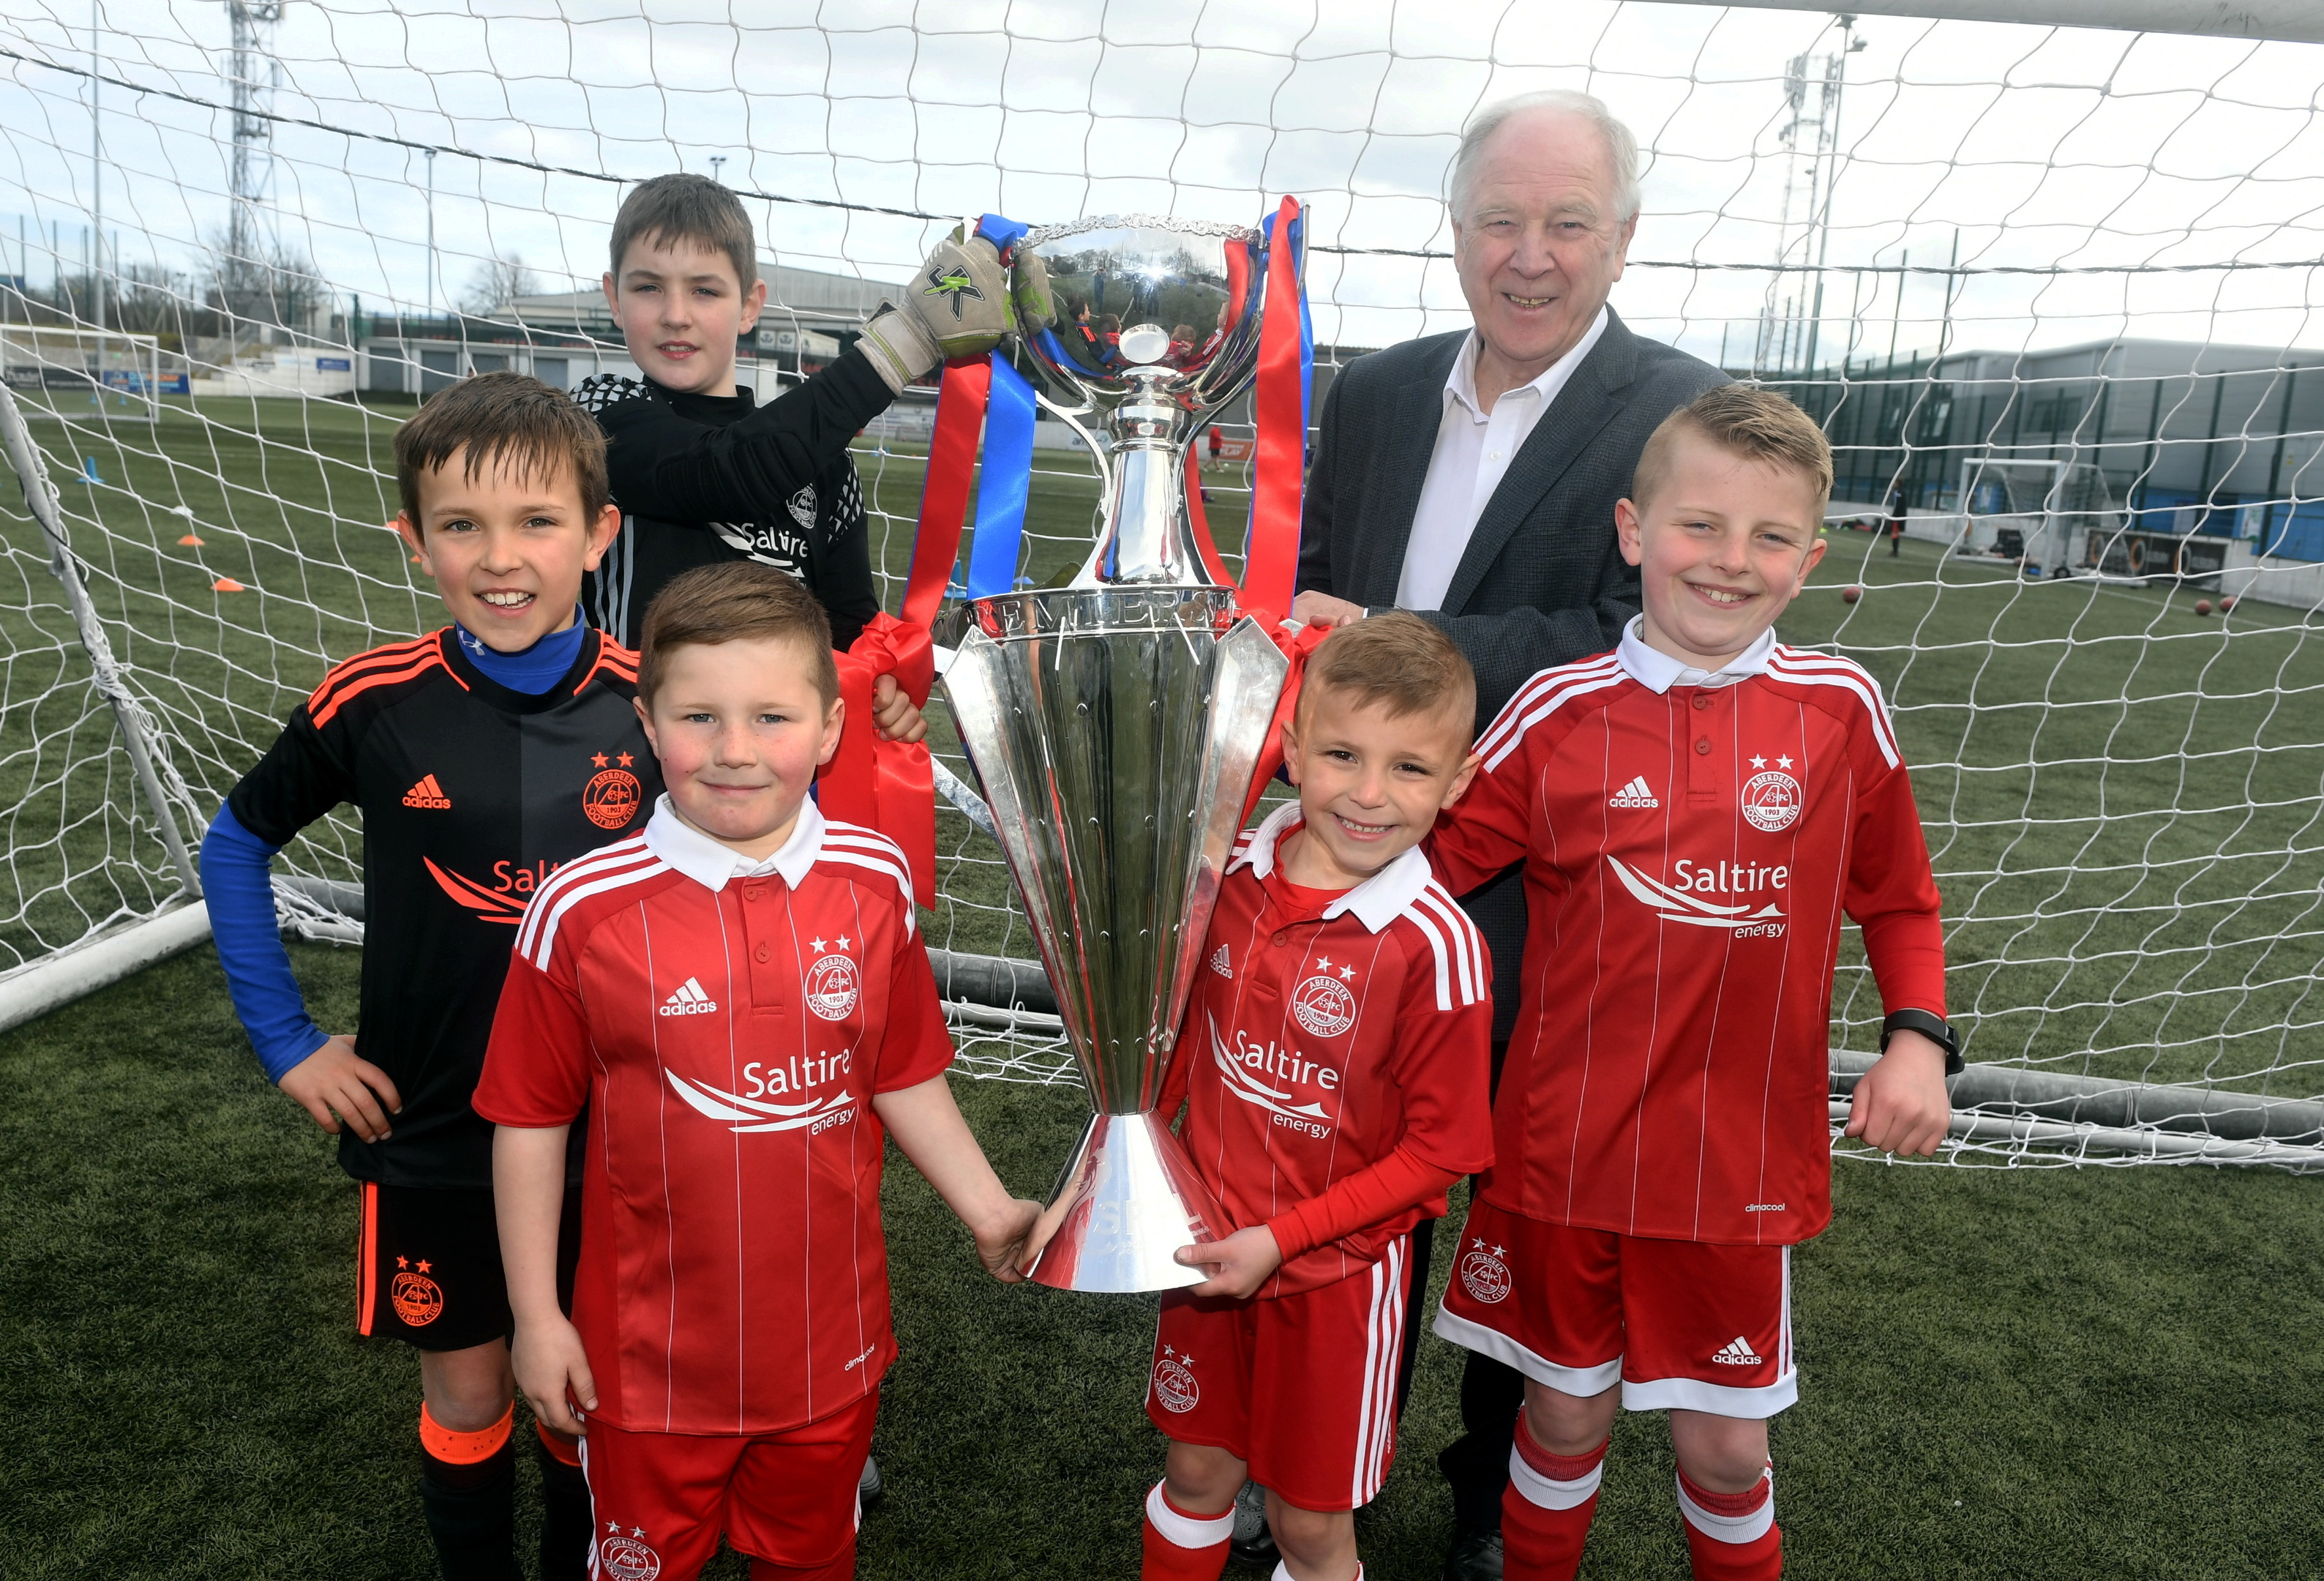 With the Premiership, front,  and League Cup trophies are, back, from left,   Taylor Crombie, 12, Craig Brown. Middle, Calum Strachan, 9, Callum Miller, 8. And, front,  Ryan Nicol, 7, and Alfie Hartley, 8.  picture by chris sumner